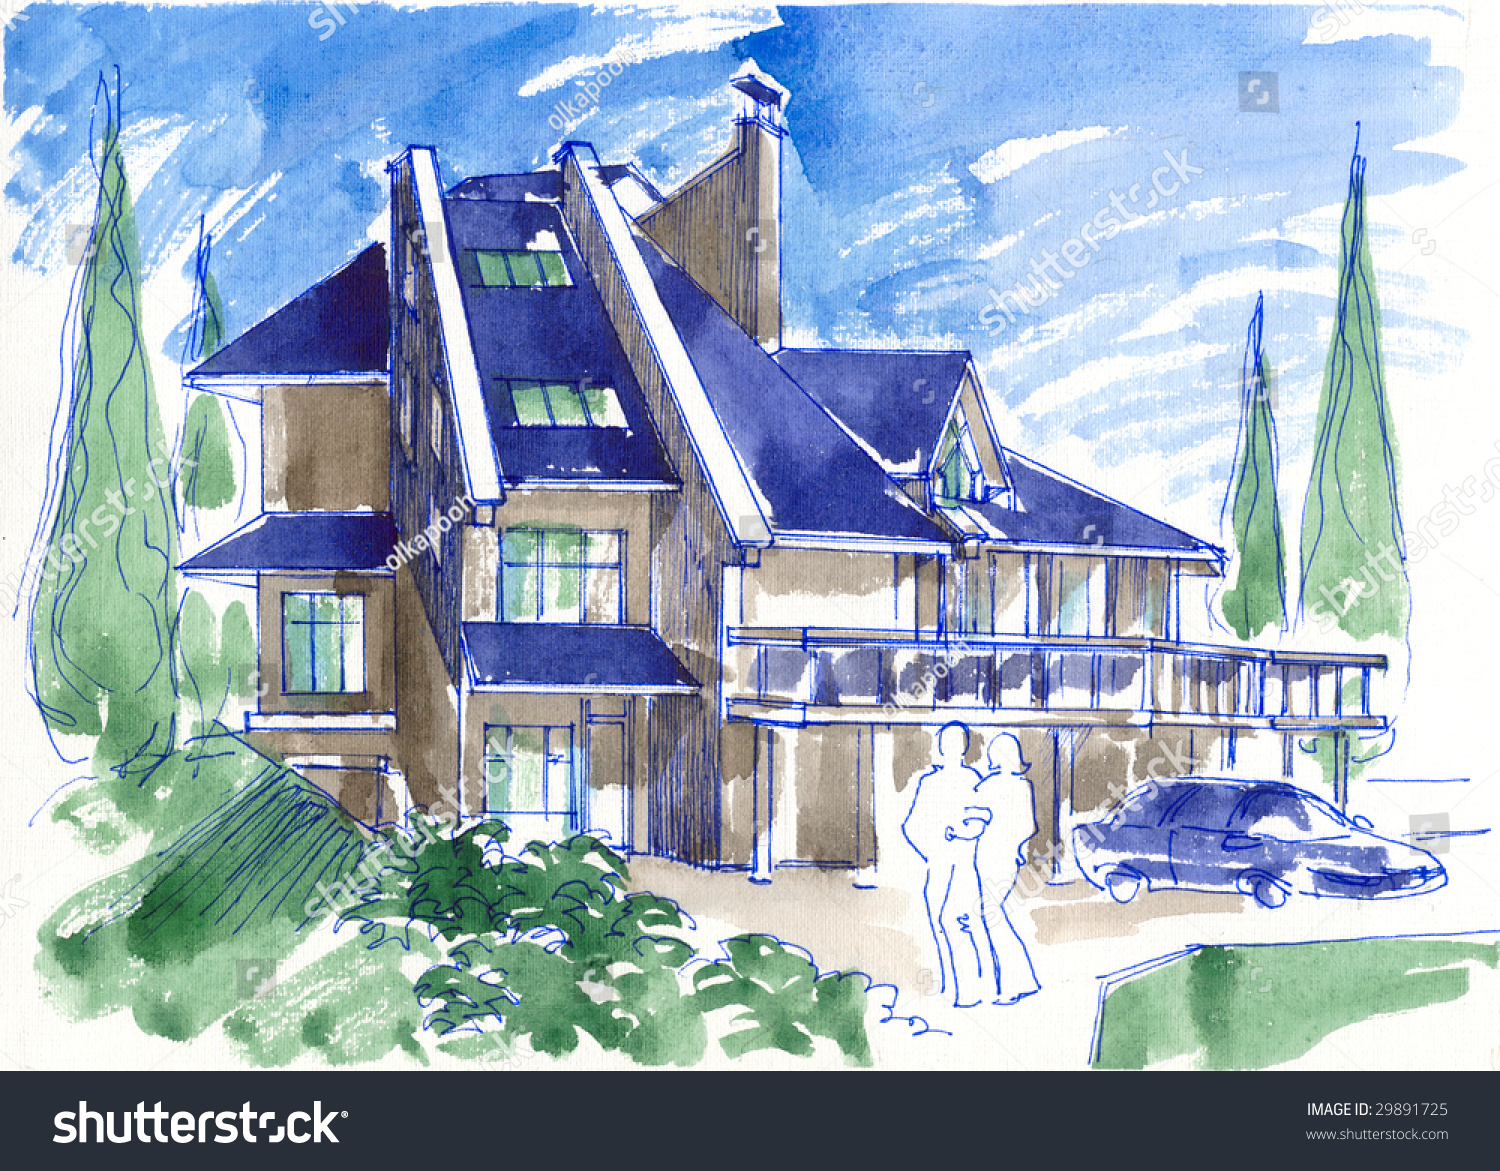 Watercolor Sketch Modern House Stock Illustration 29891725 ... - ^